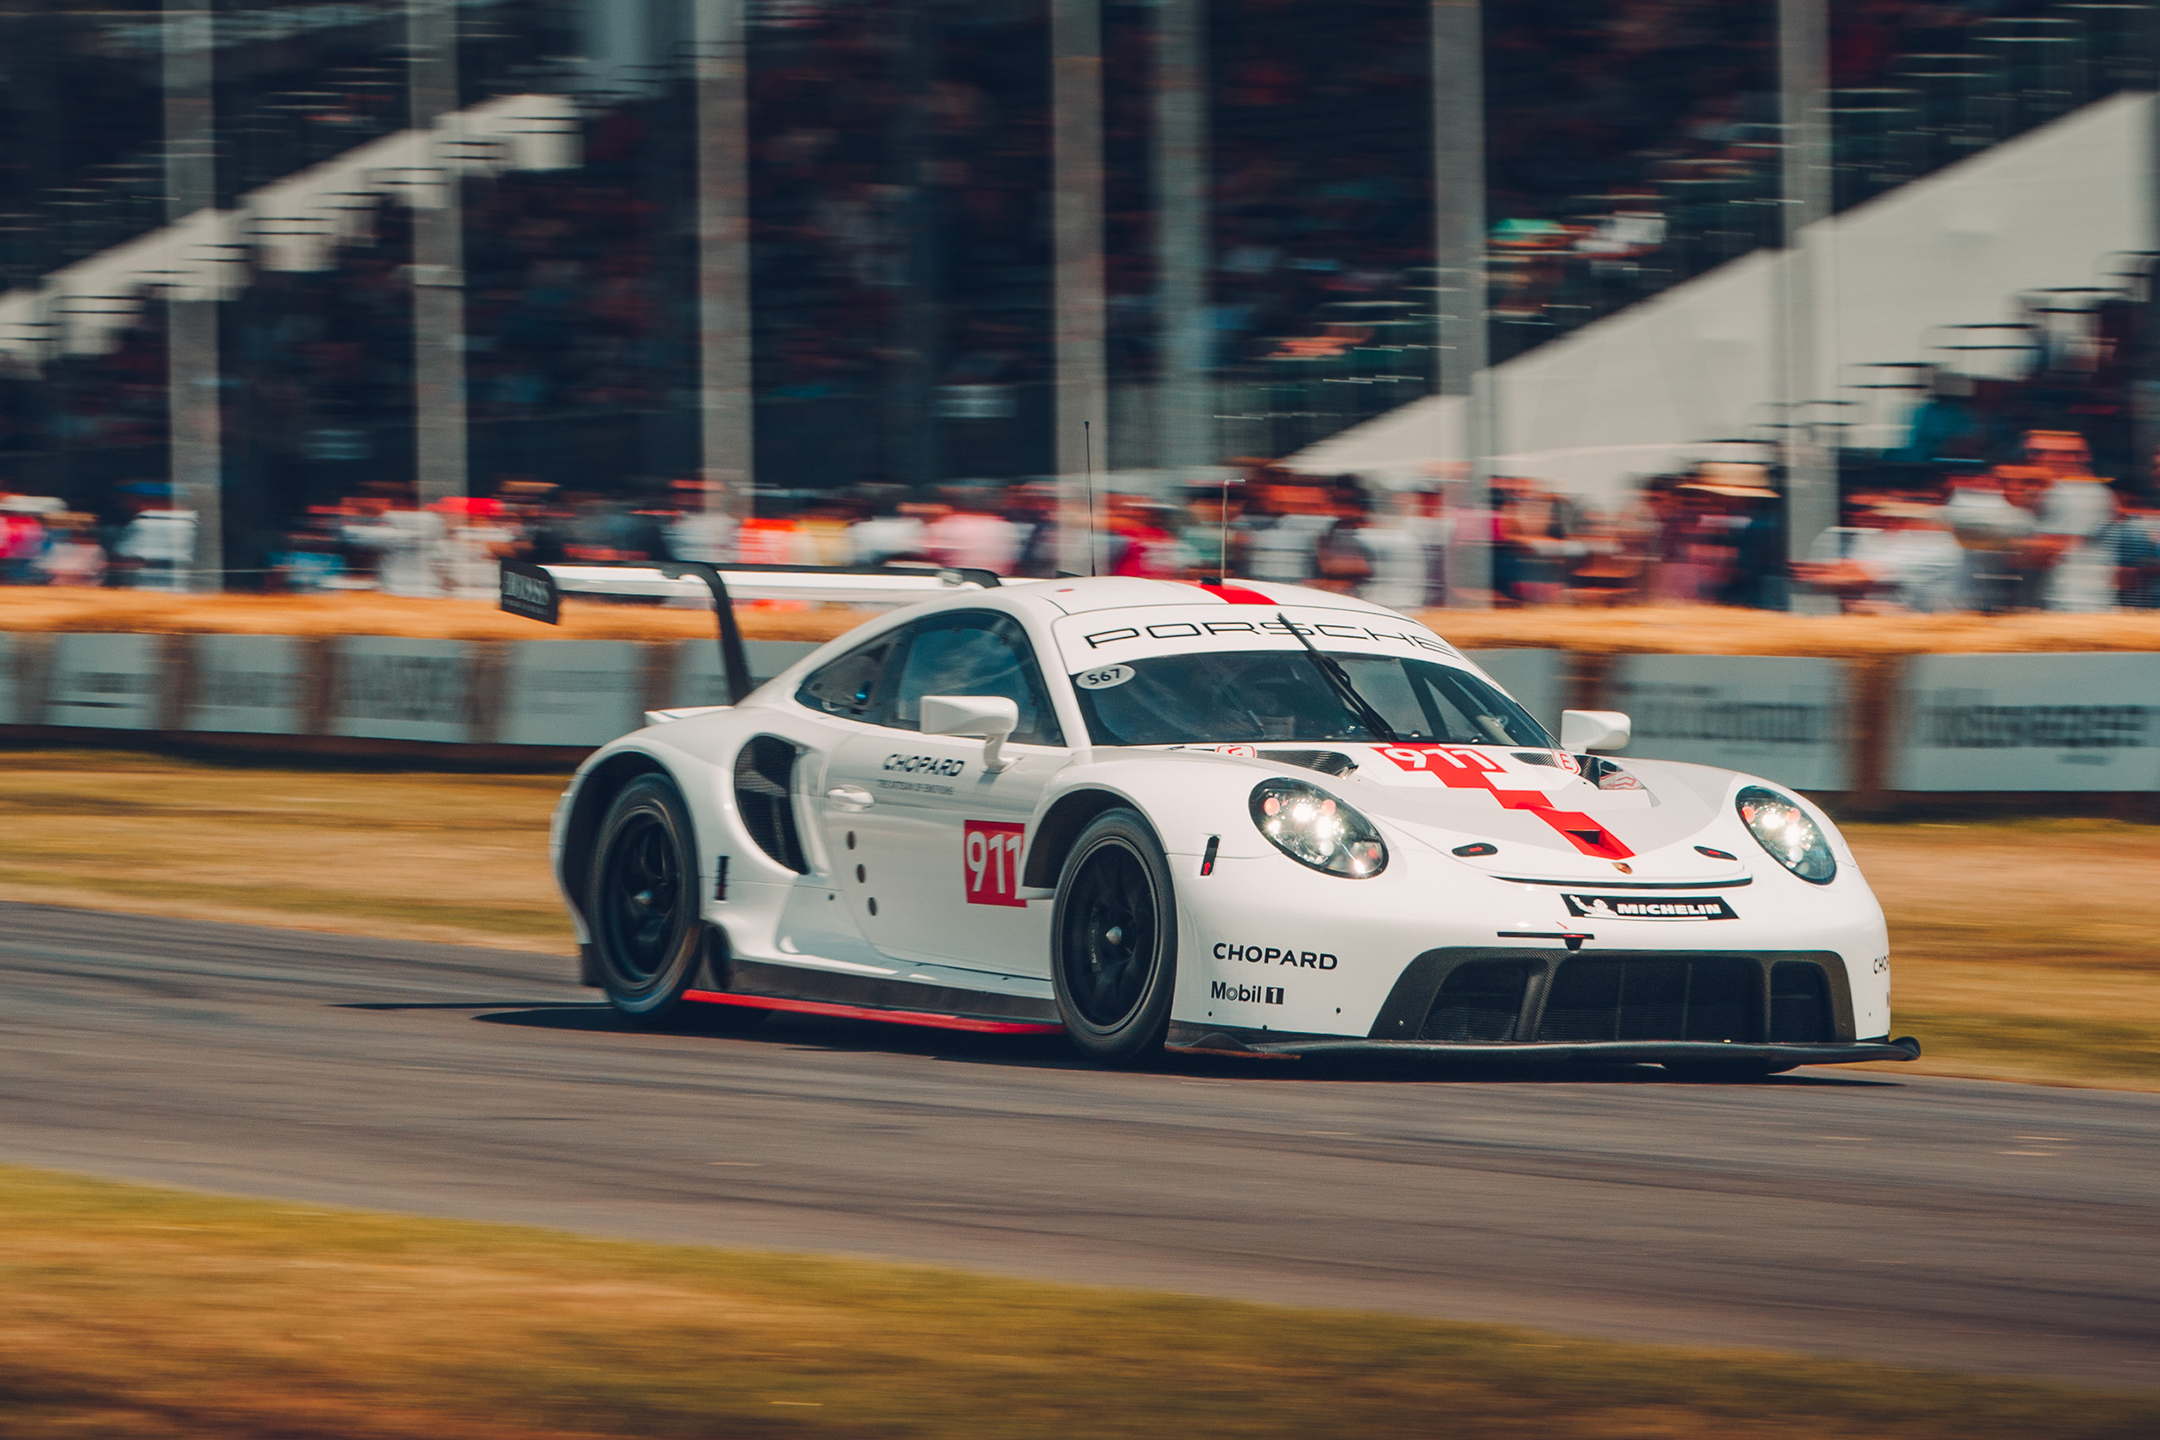 Porsche 911 RSR-19 - 2019 - side-face - track - reveal - Goodwood Festival of Speed